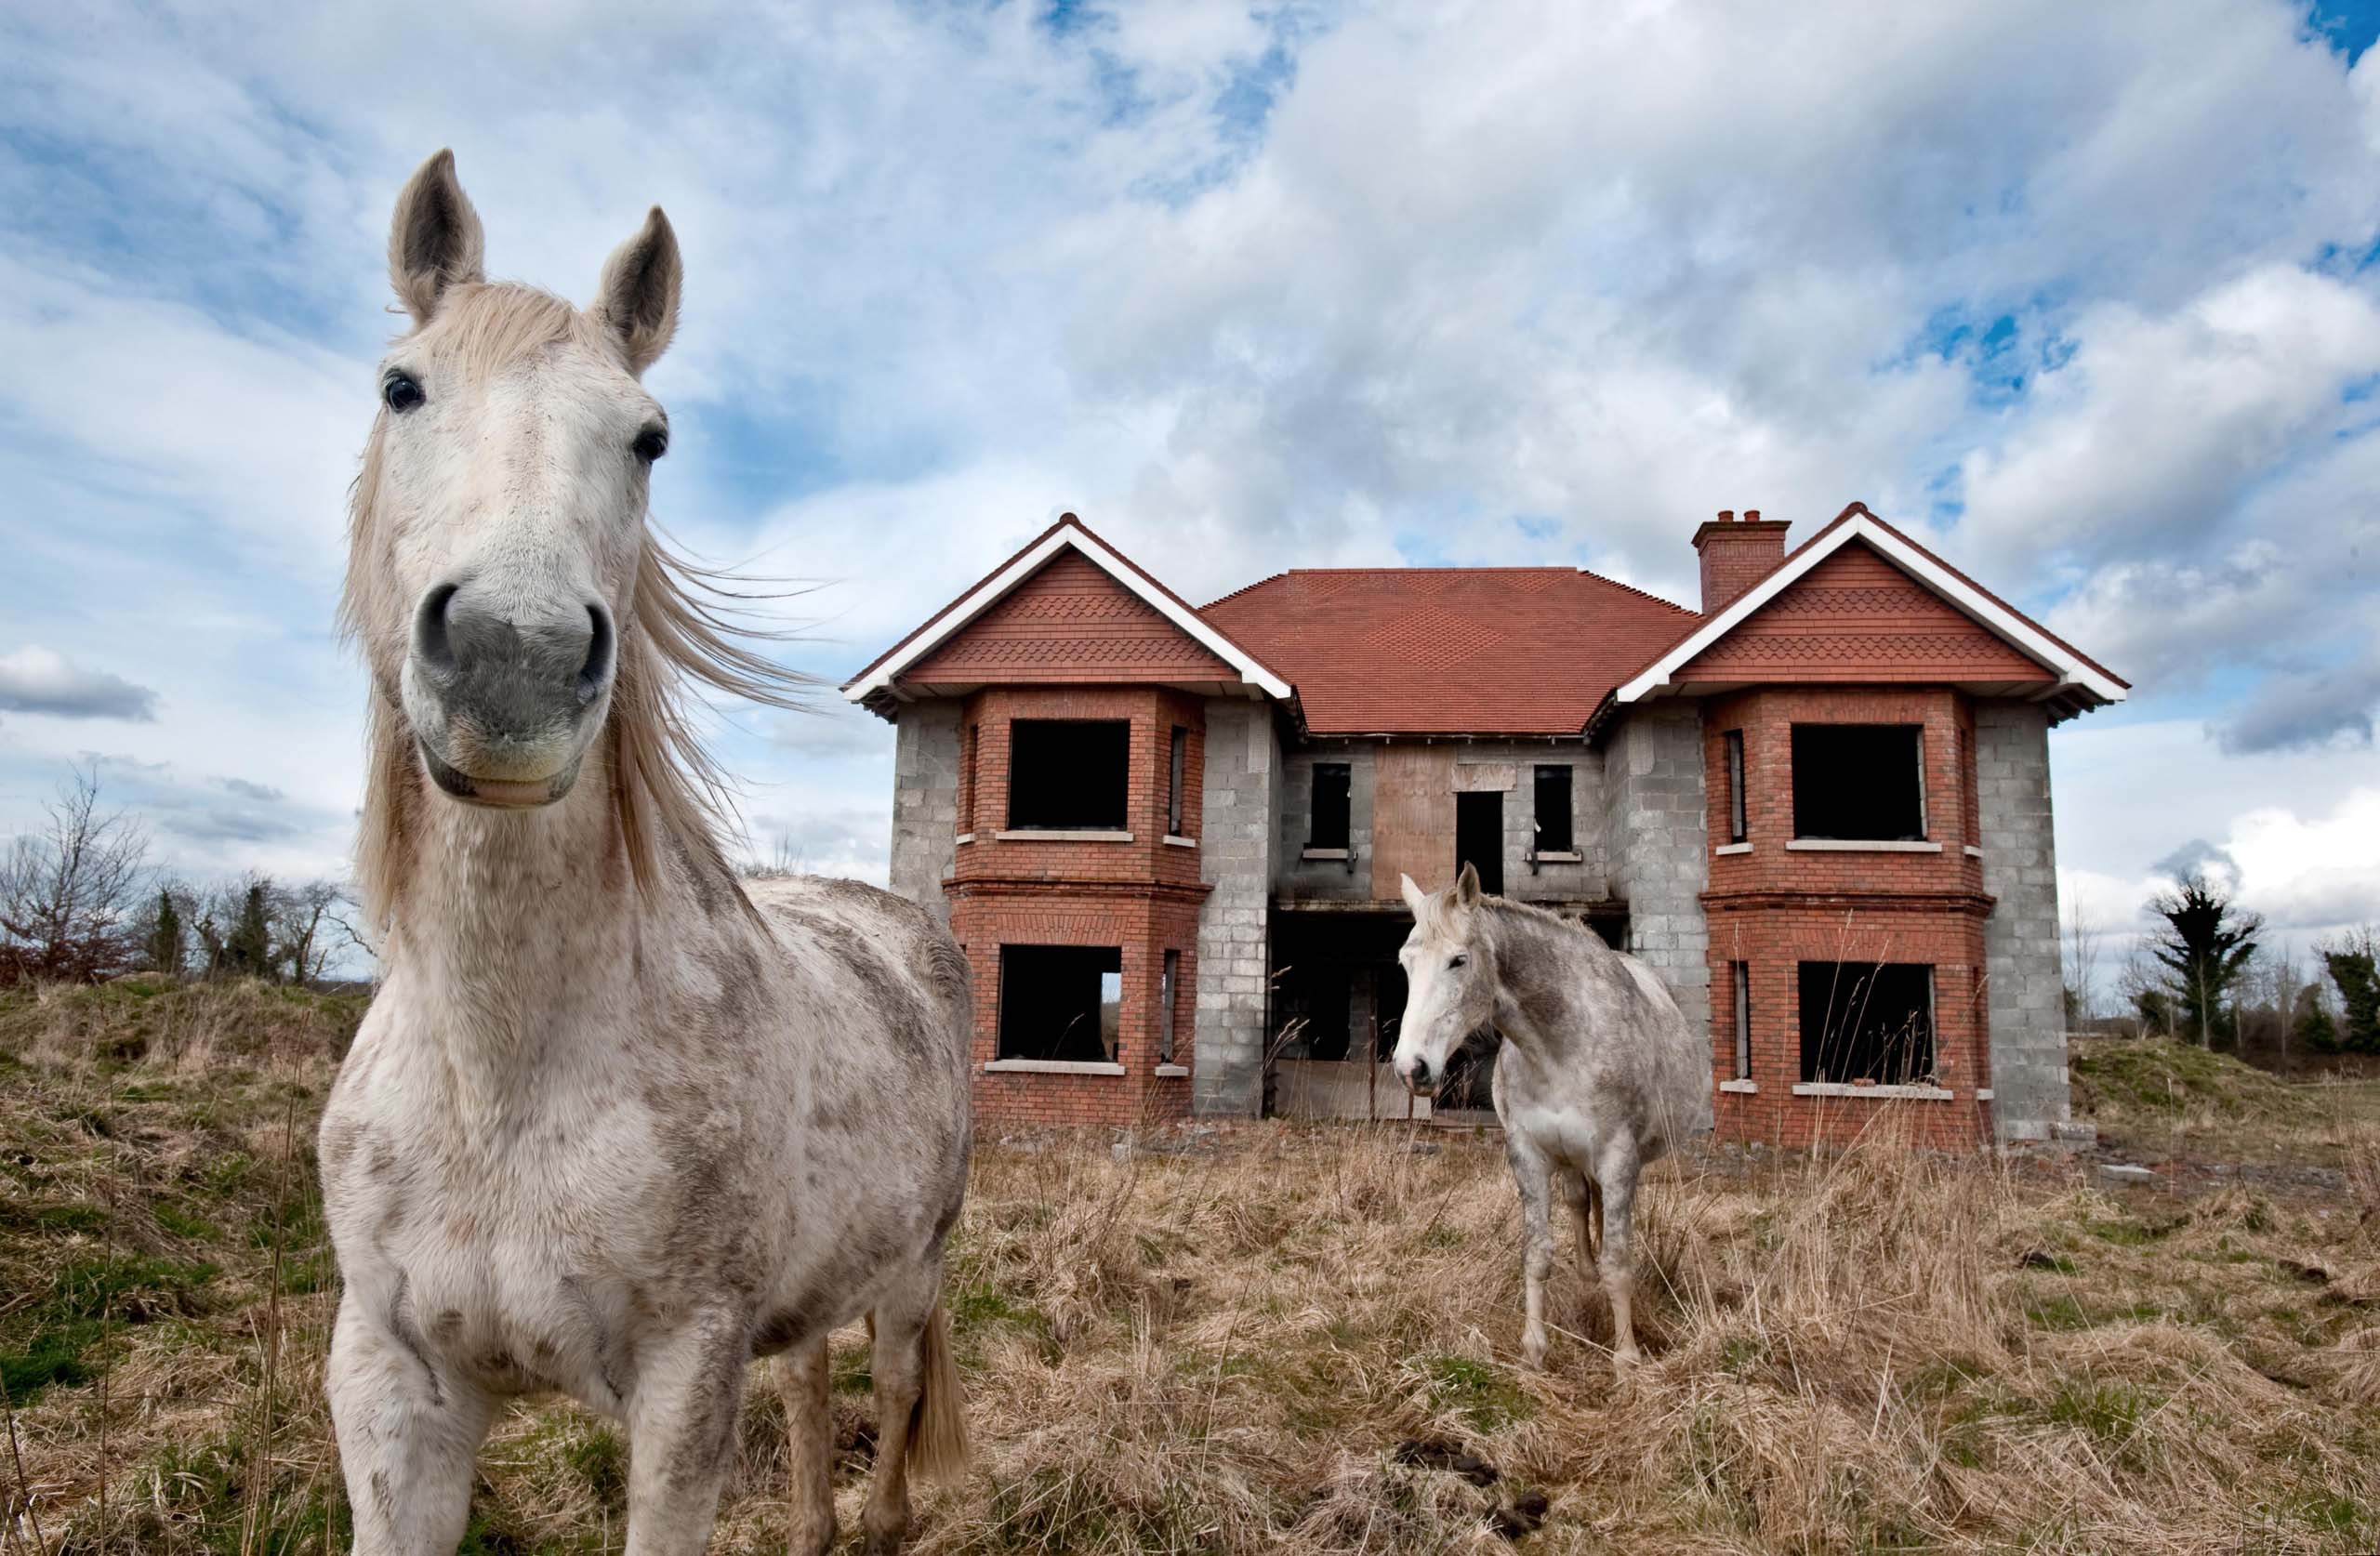 Horses in a field in front of a new house which has been left unfinished in County Leitrim, Ireland